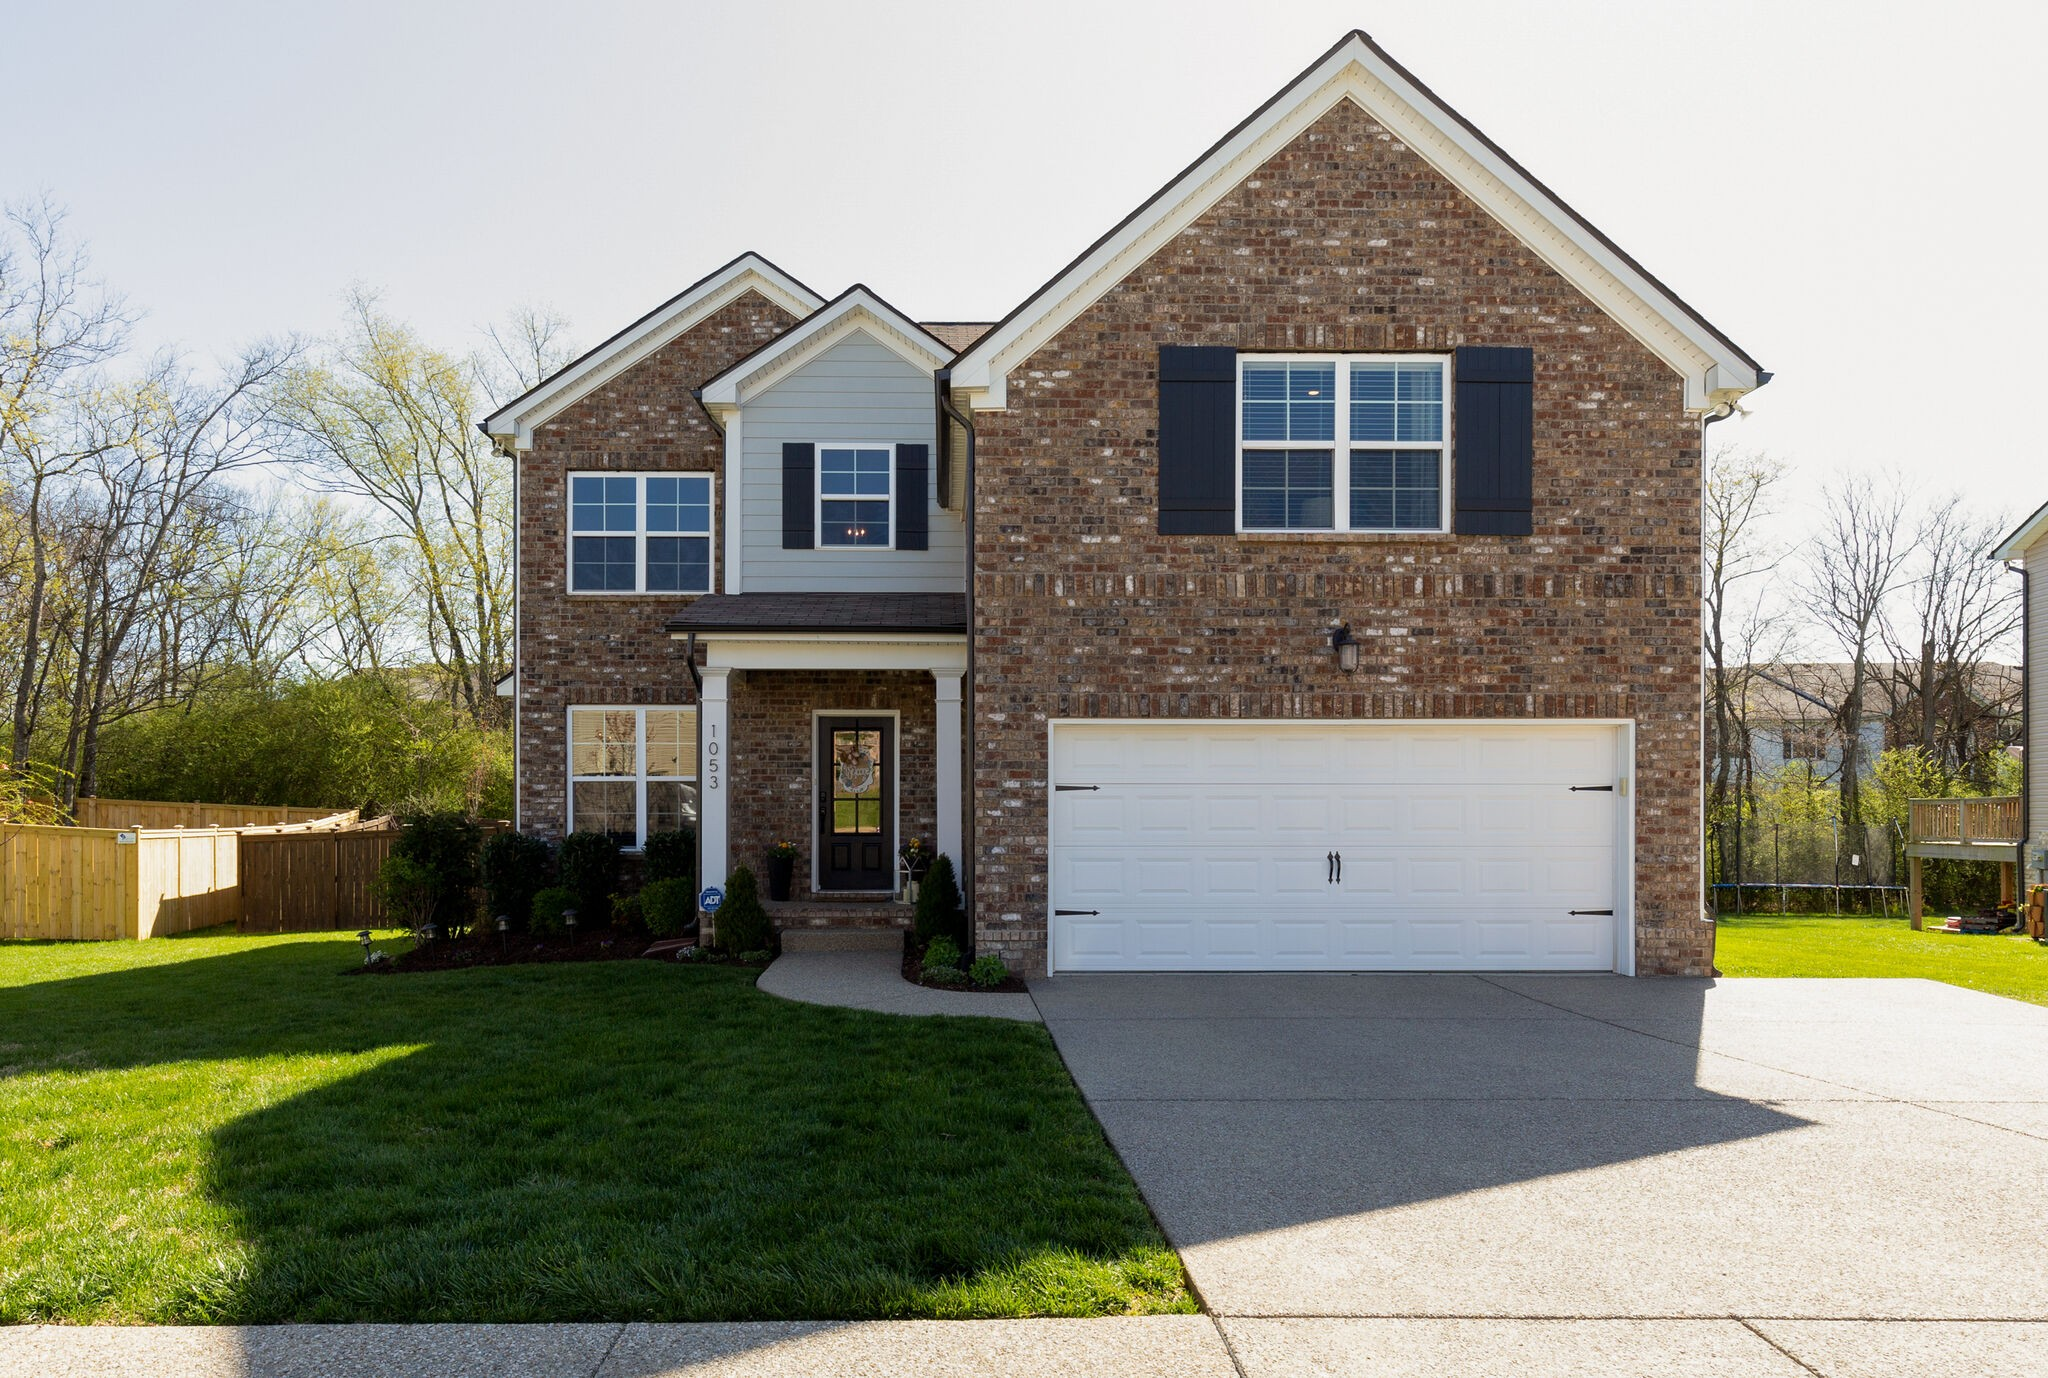 1053 Achiever Cir Property Photo - Spring Hill, TN real estate listing